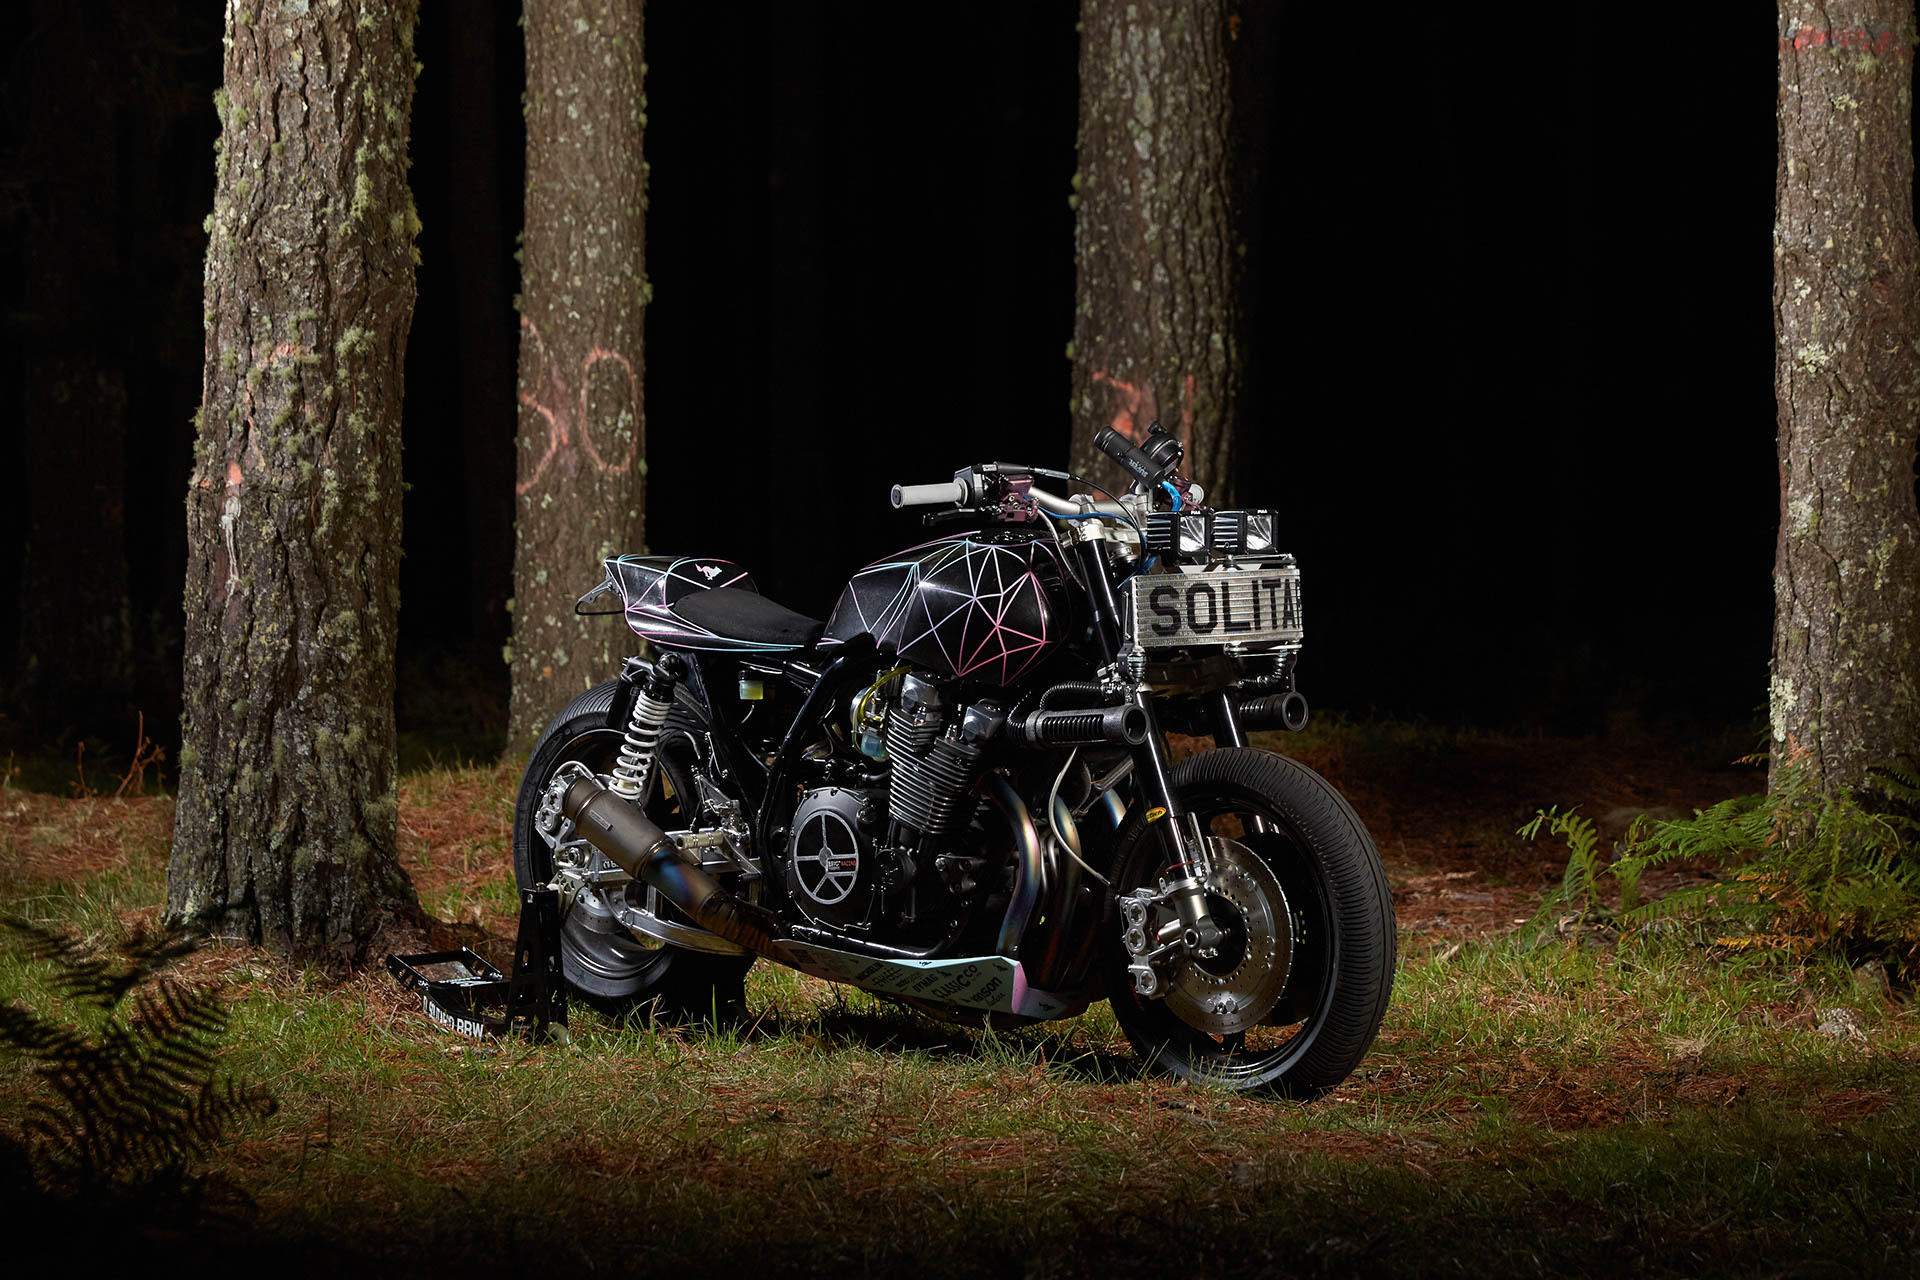 Yamaha XJR1300 Big Bad Wolf by El Solitario